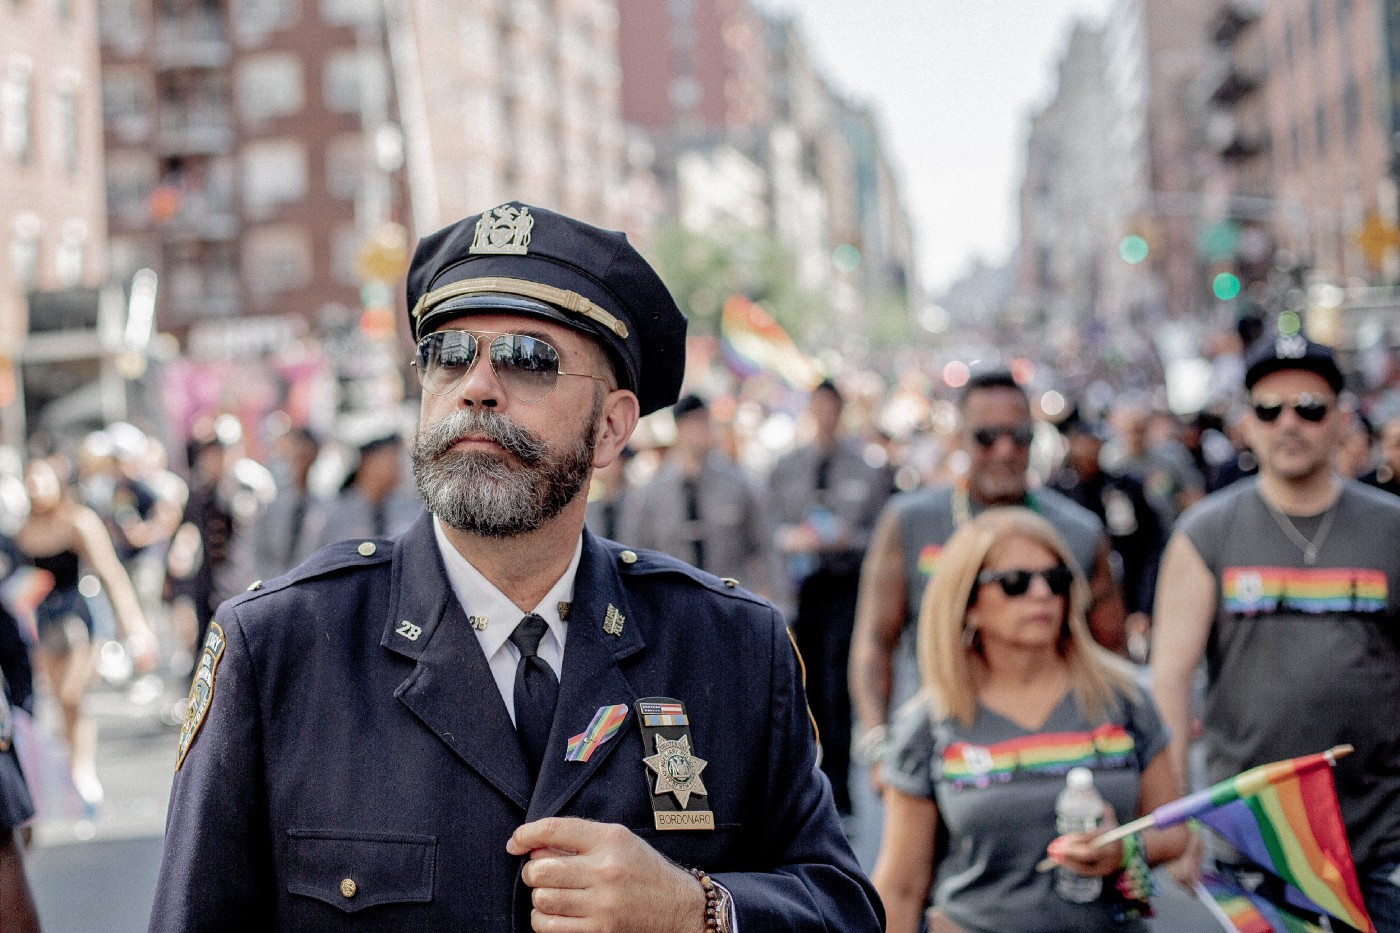 An aged man in police uniform in the middle of a Pride parade.